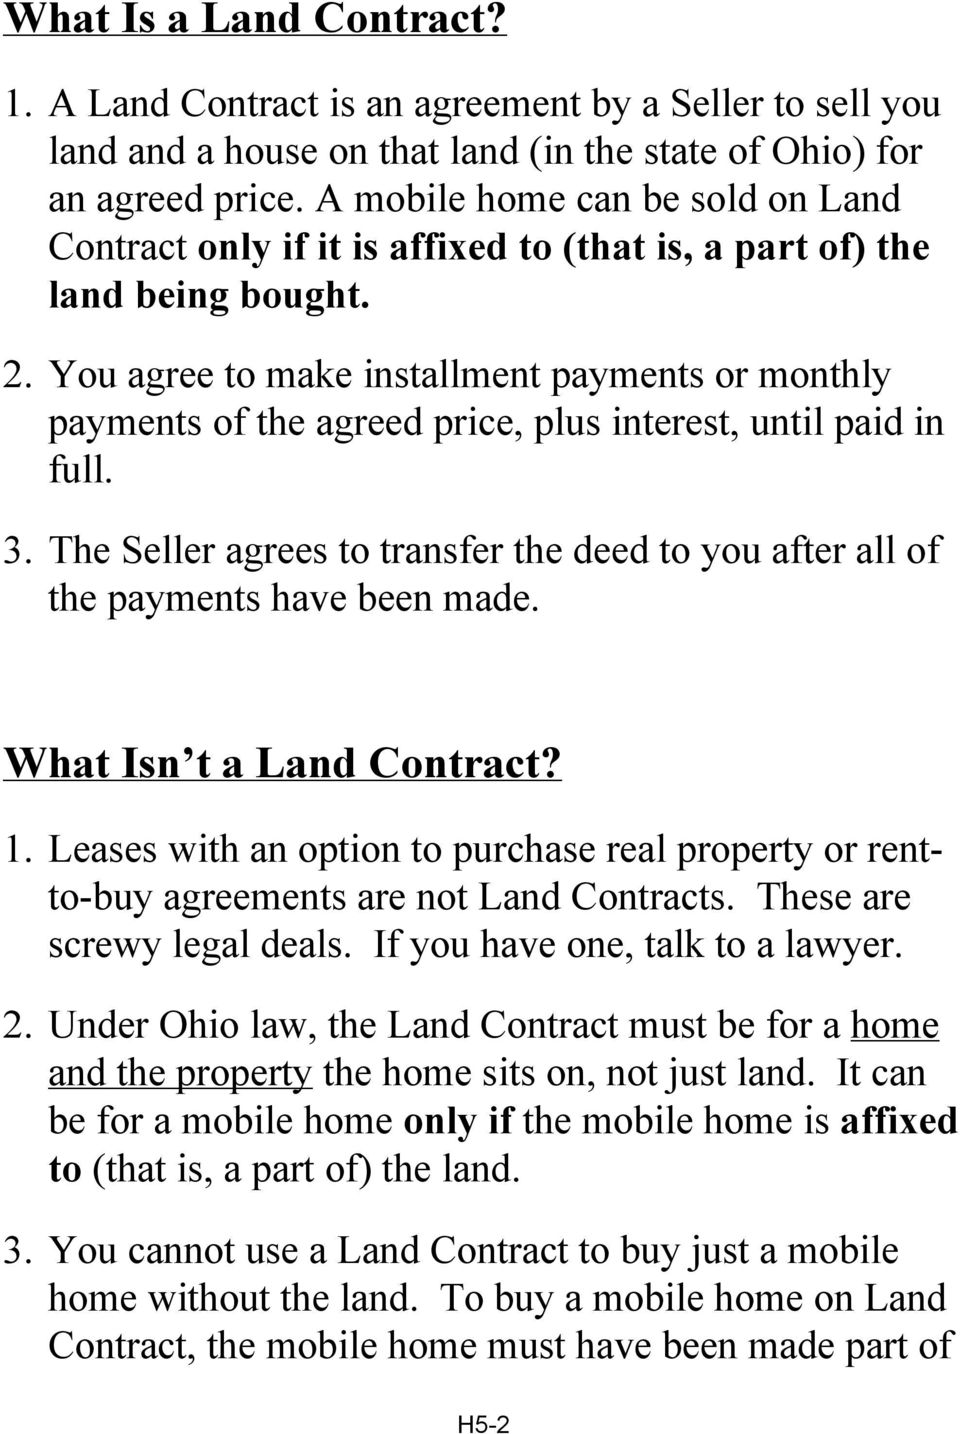 What You Should Know About LAND CONTRACTS - PDF